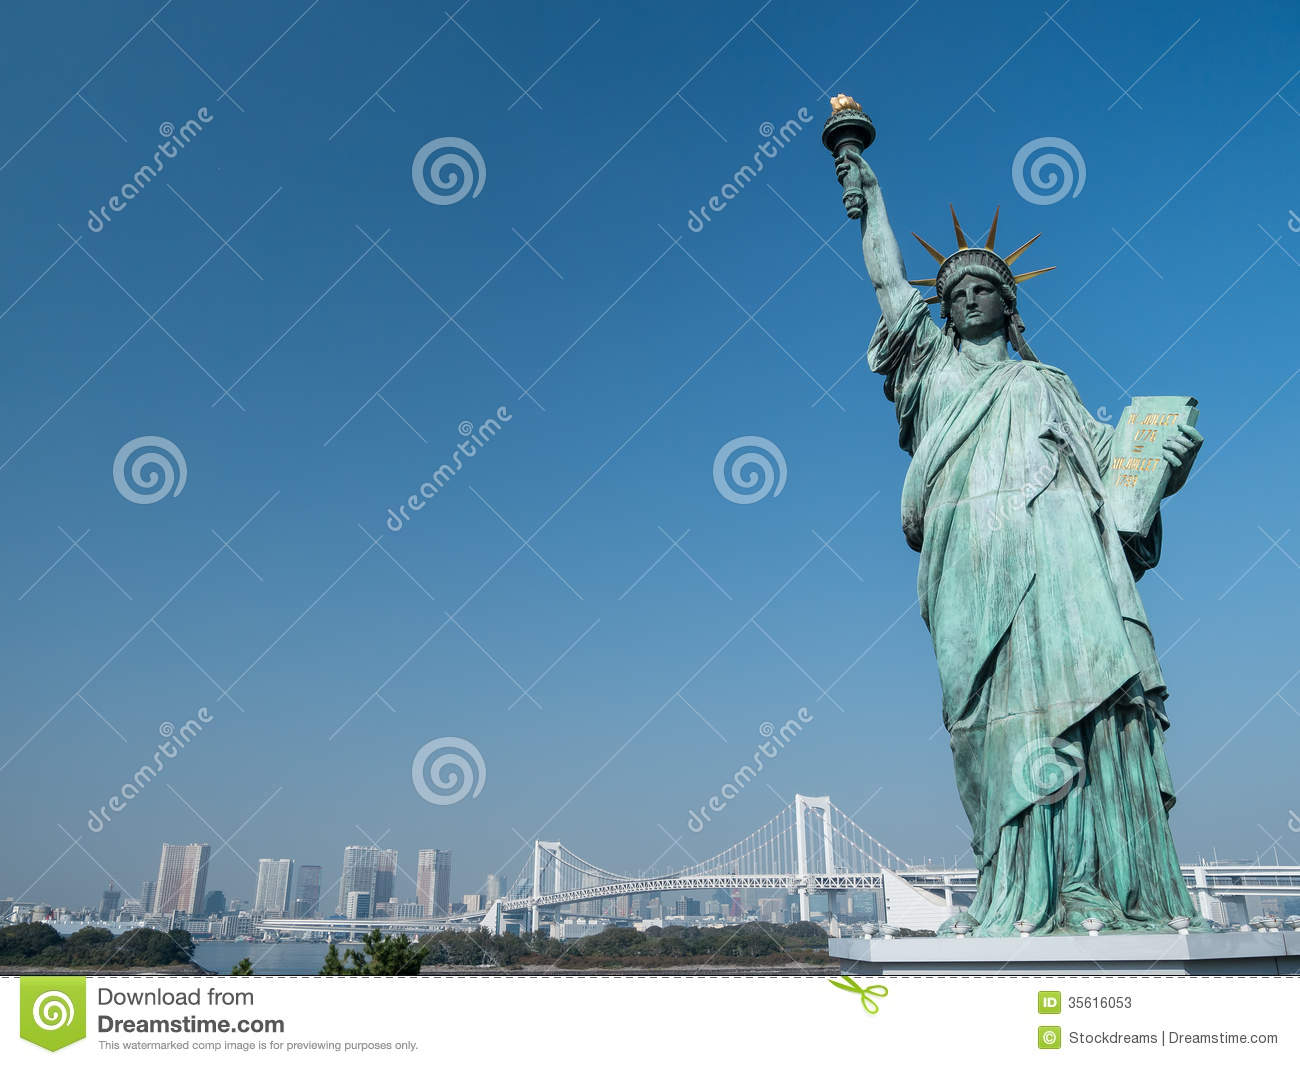 Replica Of The Statue Of Liberty Editorial Stock Photo - Image: 35616053